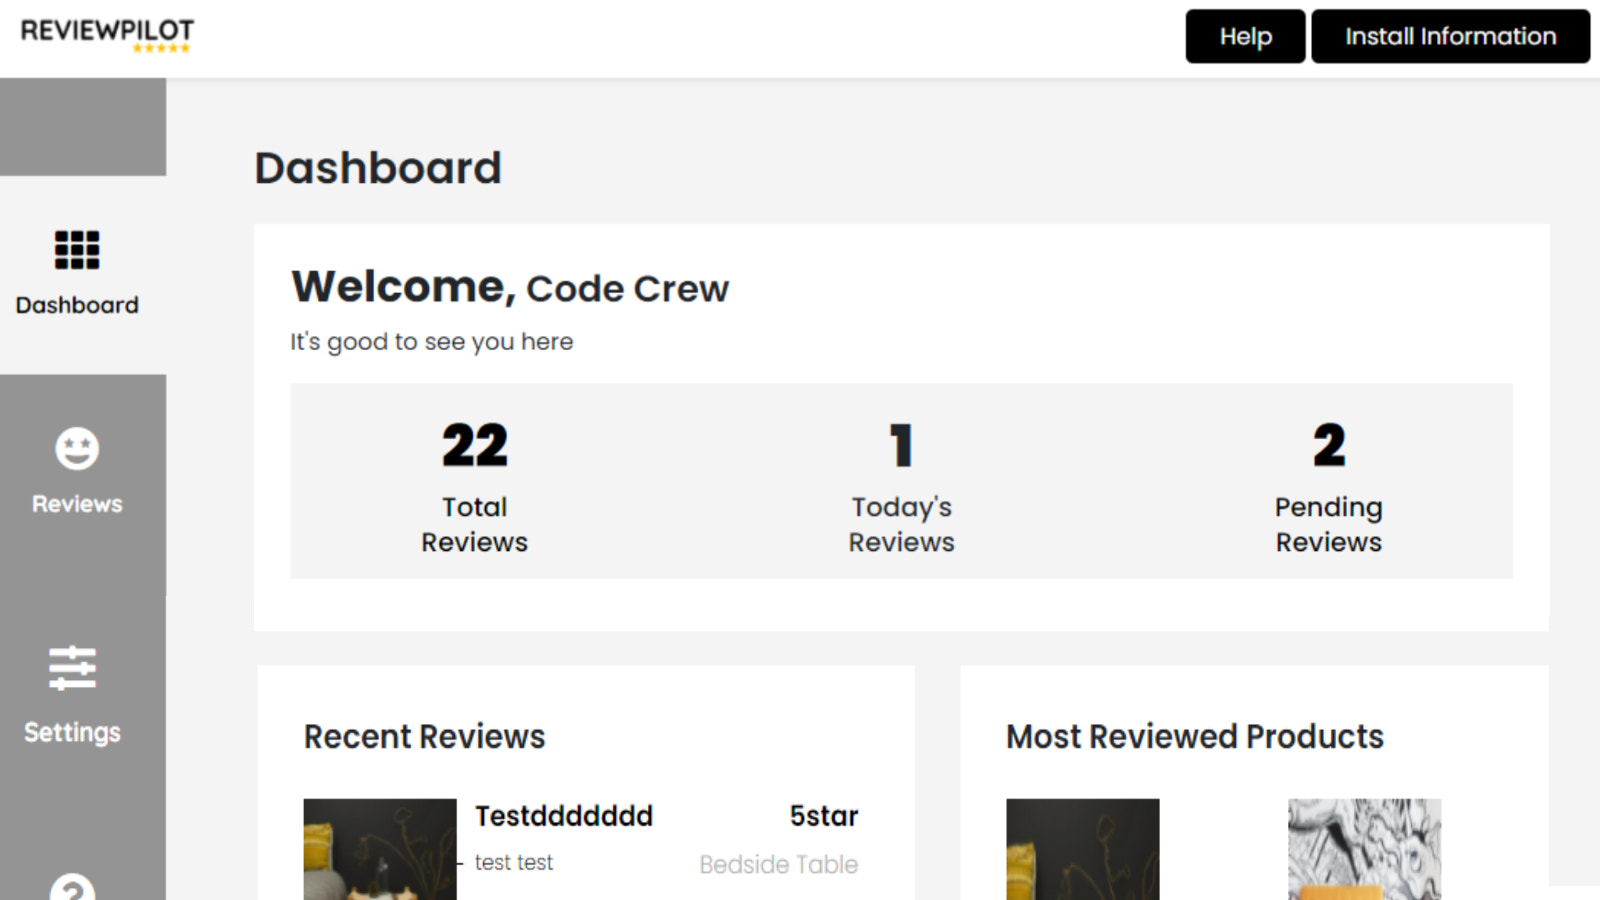 Welcome to Review Pilot Dashboard